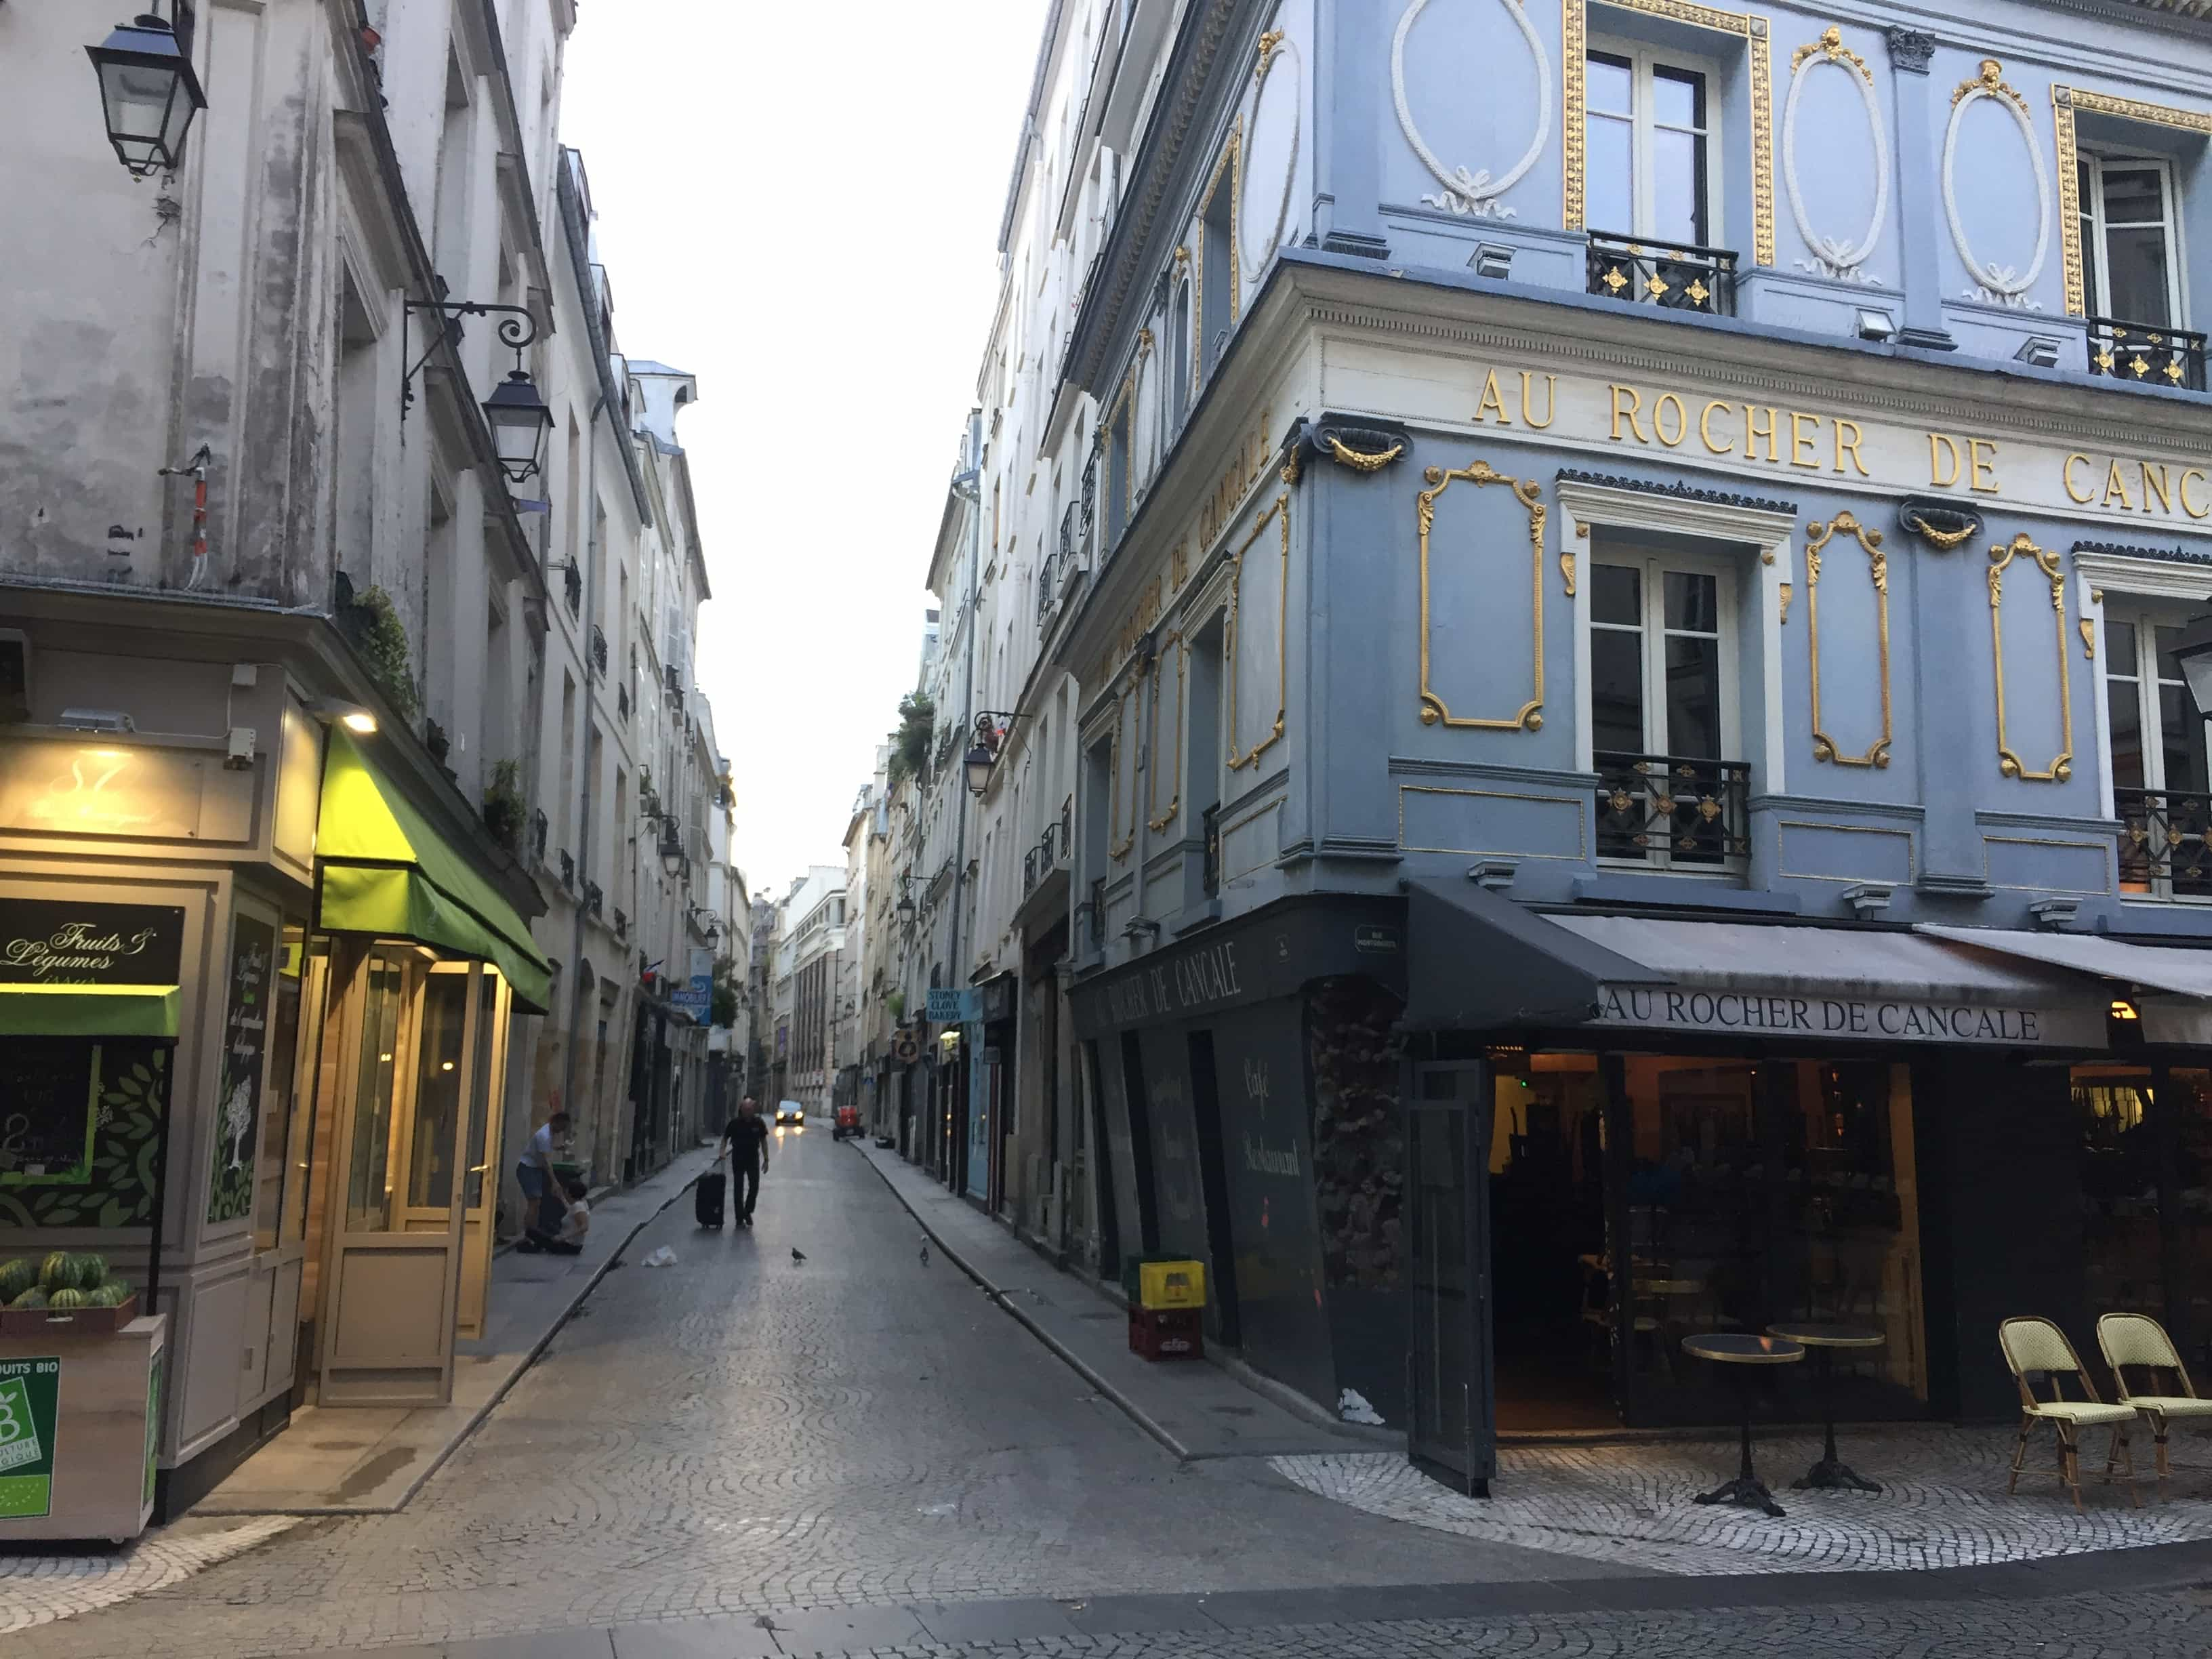 The streets of Paris near our airbnb